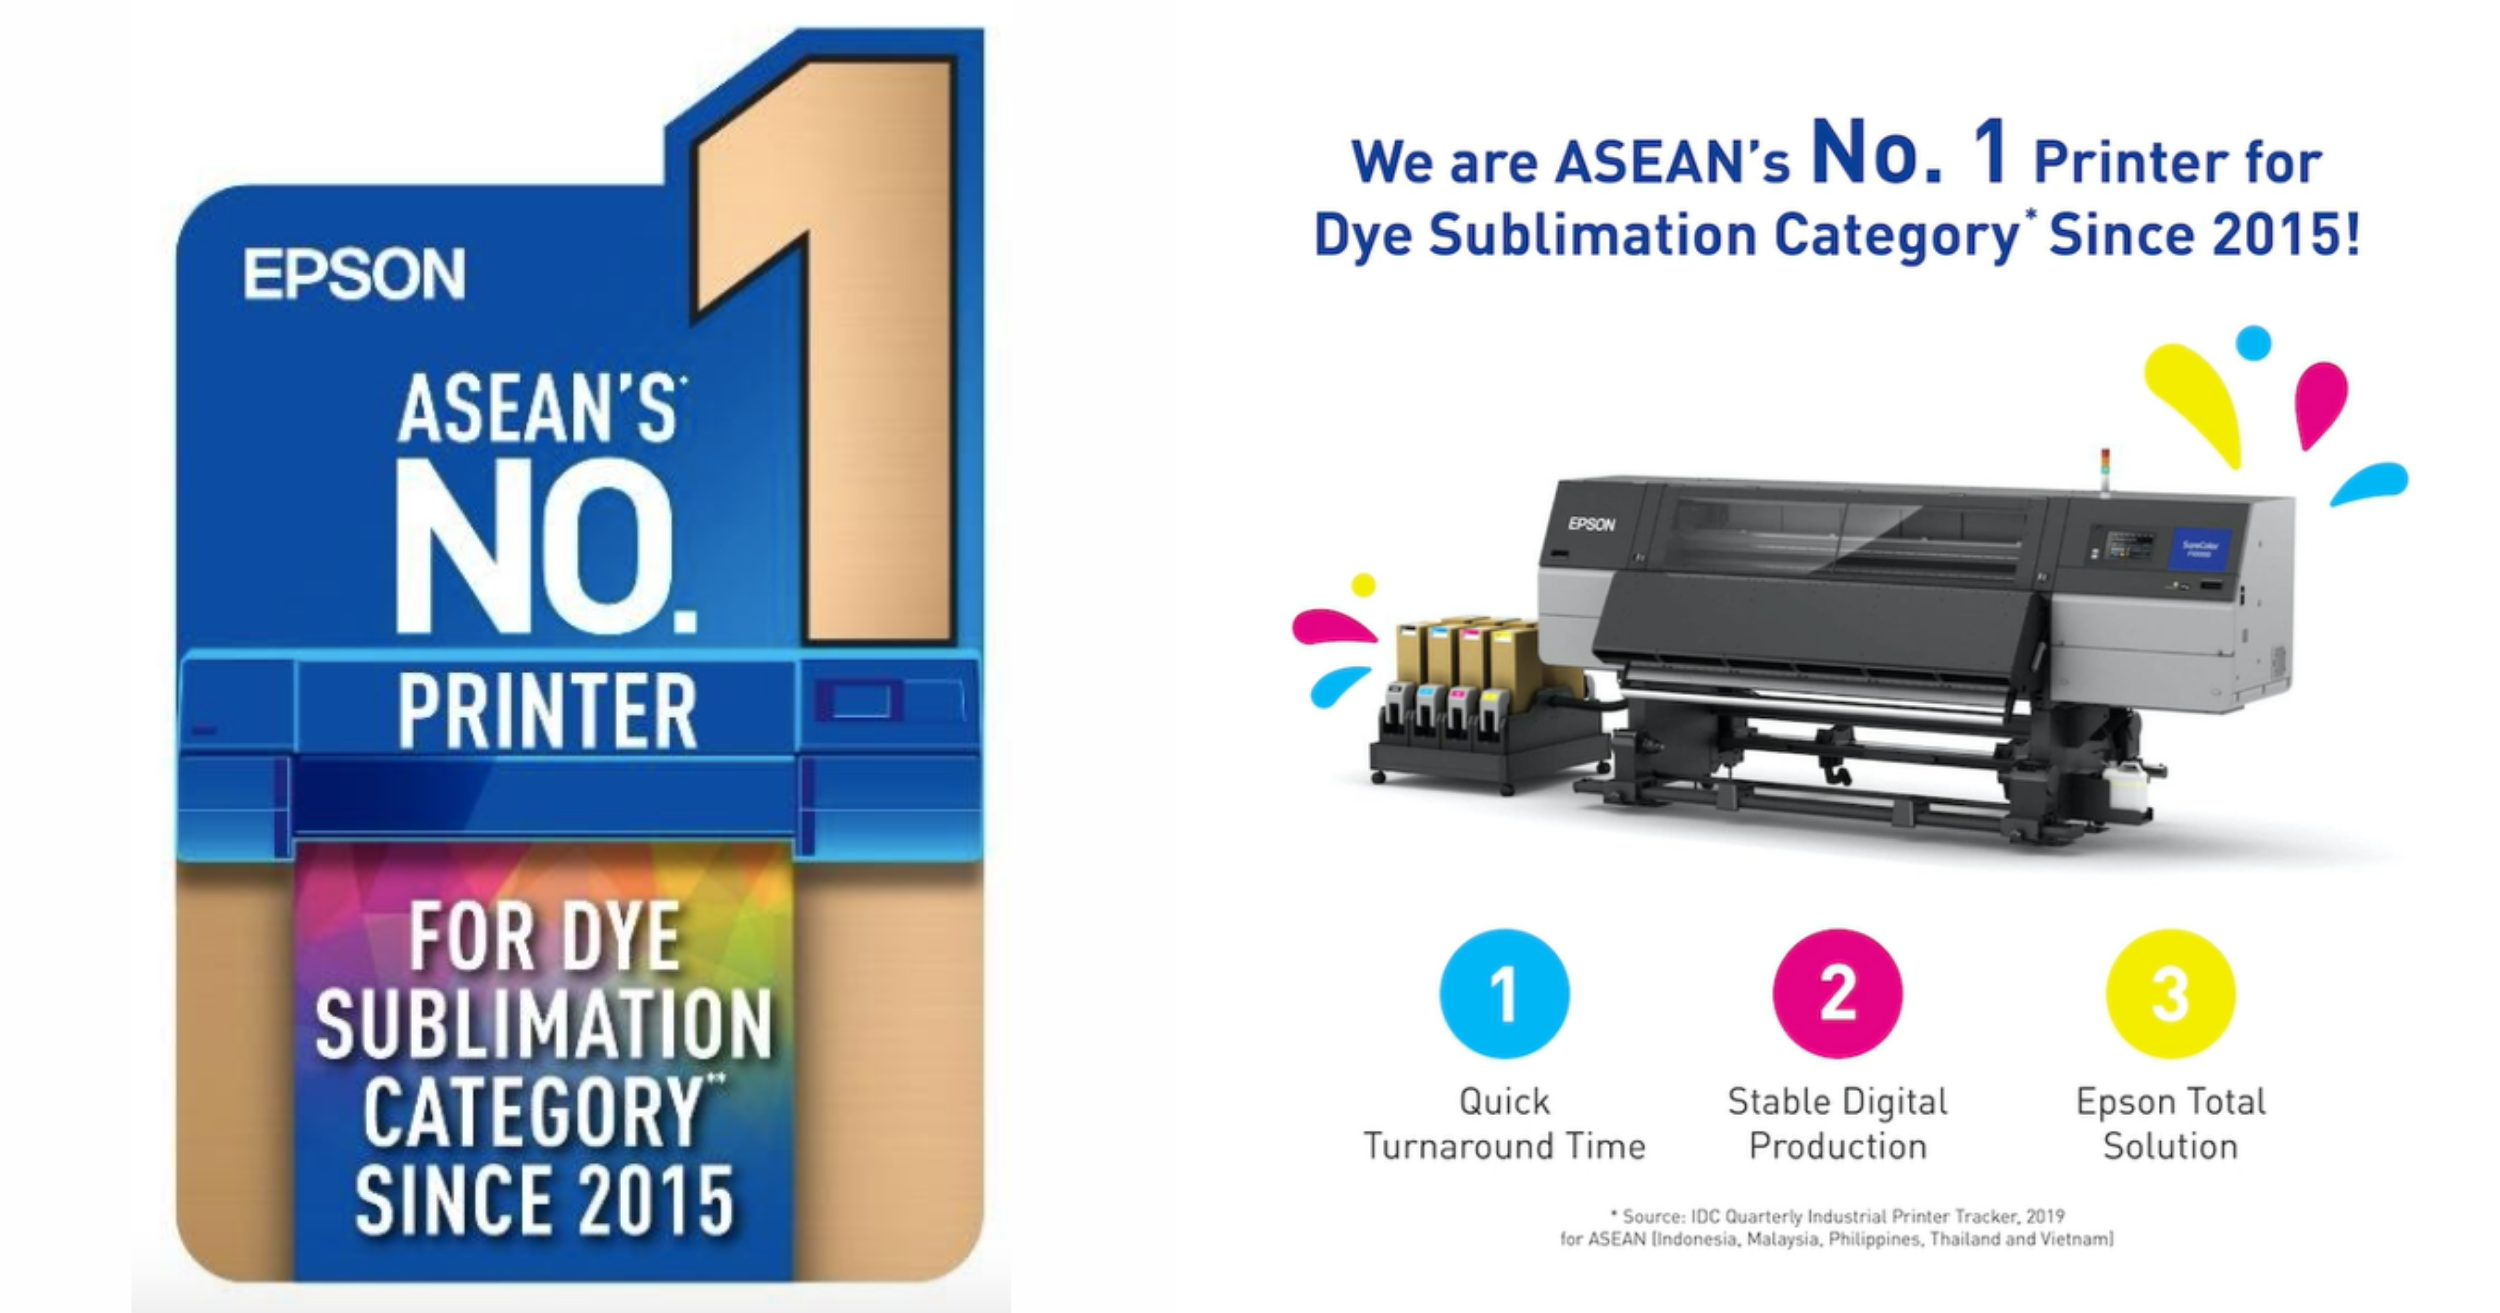 epson-is-leading-the-asean-market-in-textile-dye-sublimation-printer-category-since-2015